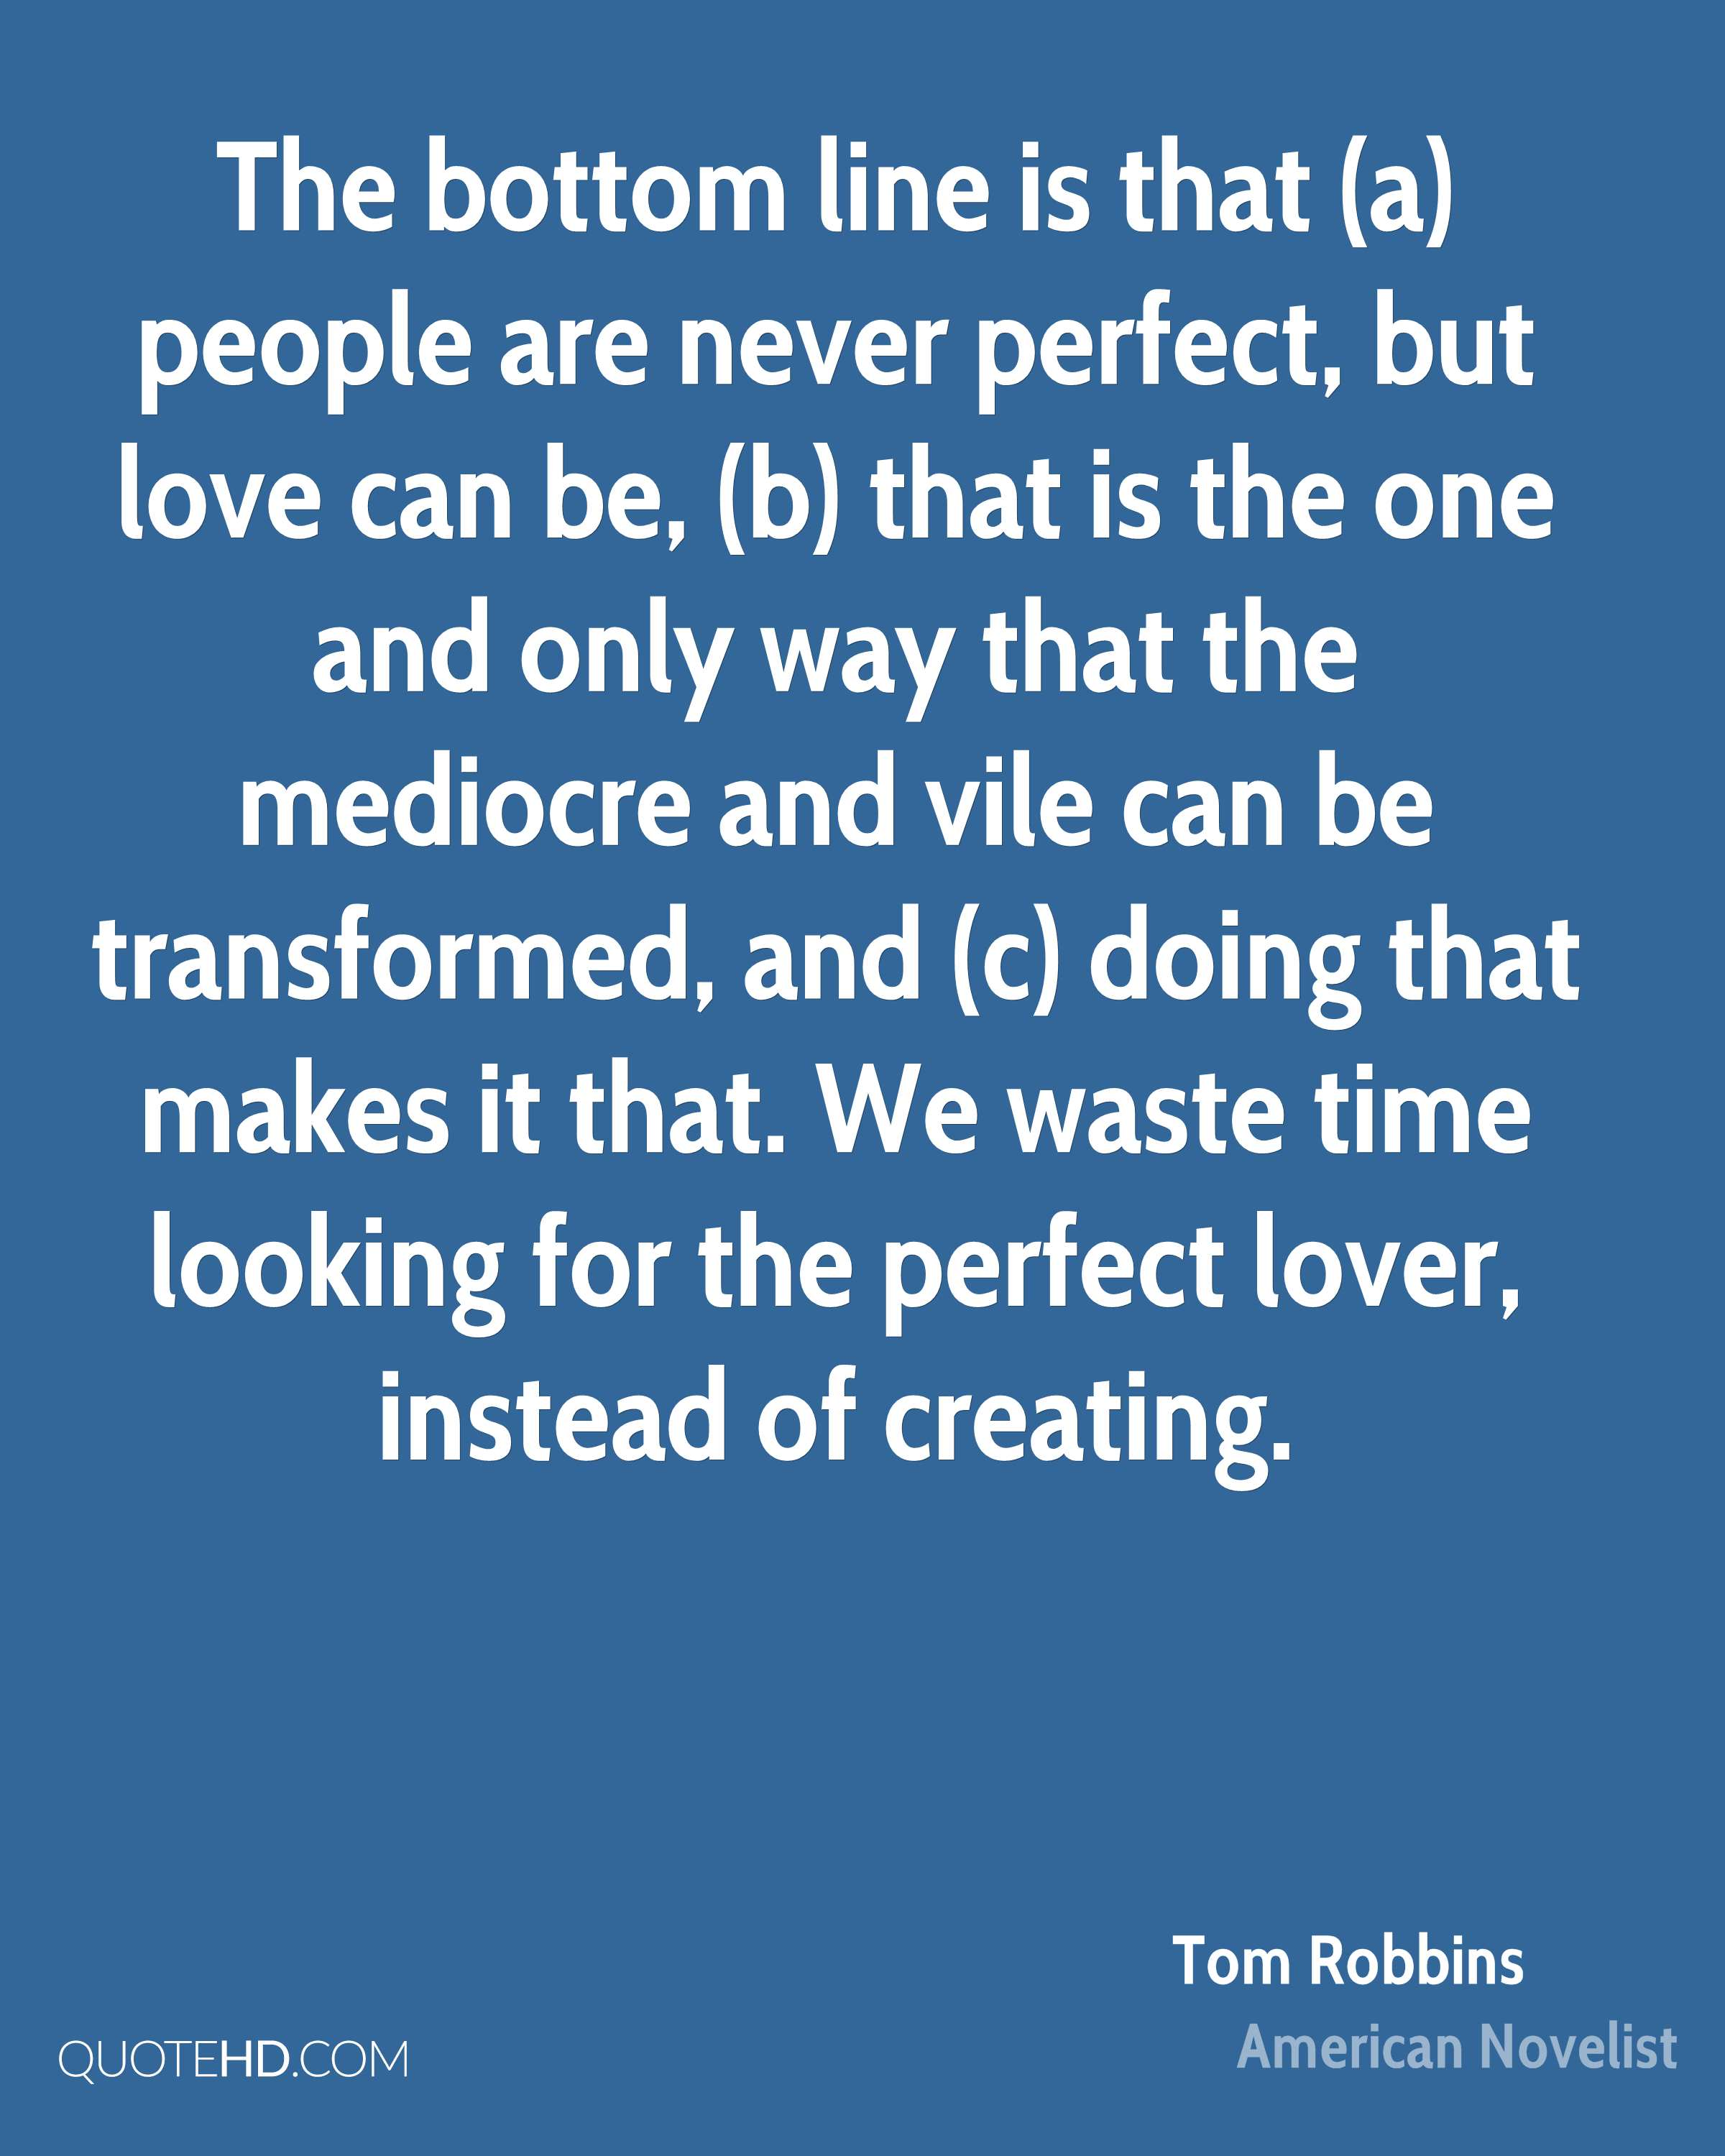 The bottom line is that (a) people are never perfect, but love can be, (b) that is the one and only way that the mediocre and vile can be transformed, and (c) doing that makes it that. We waste time looking for the perfect lover, instead of creating.